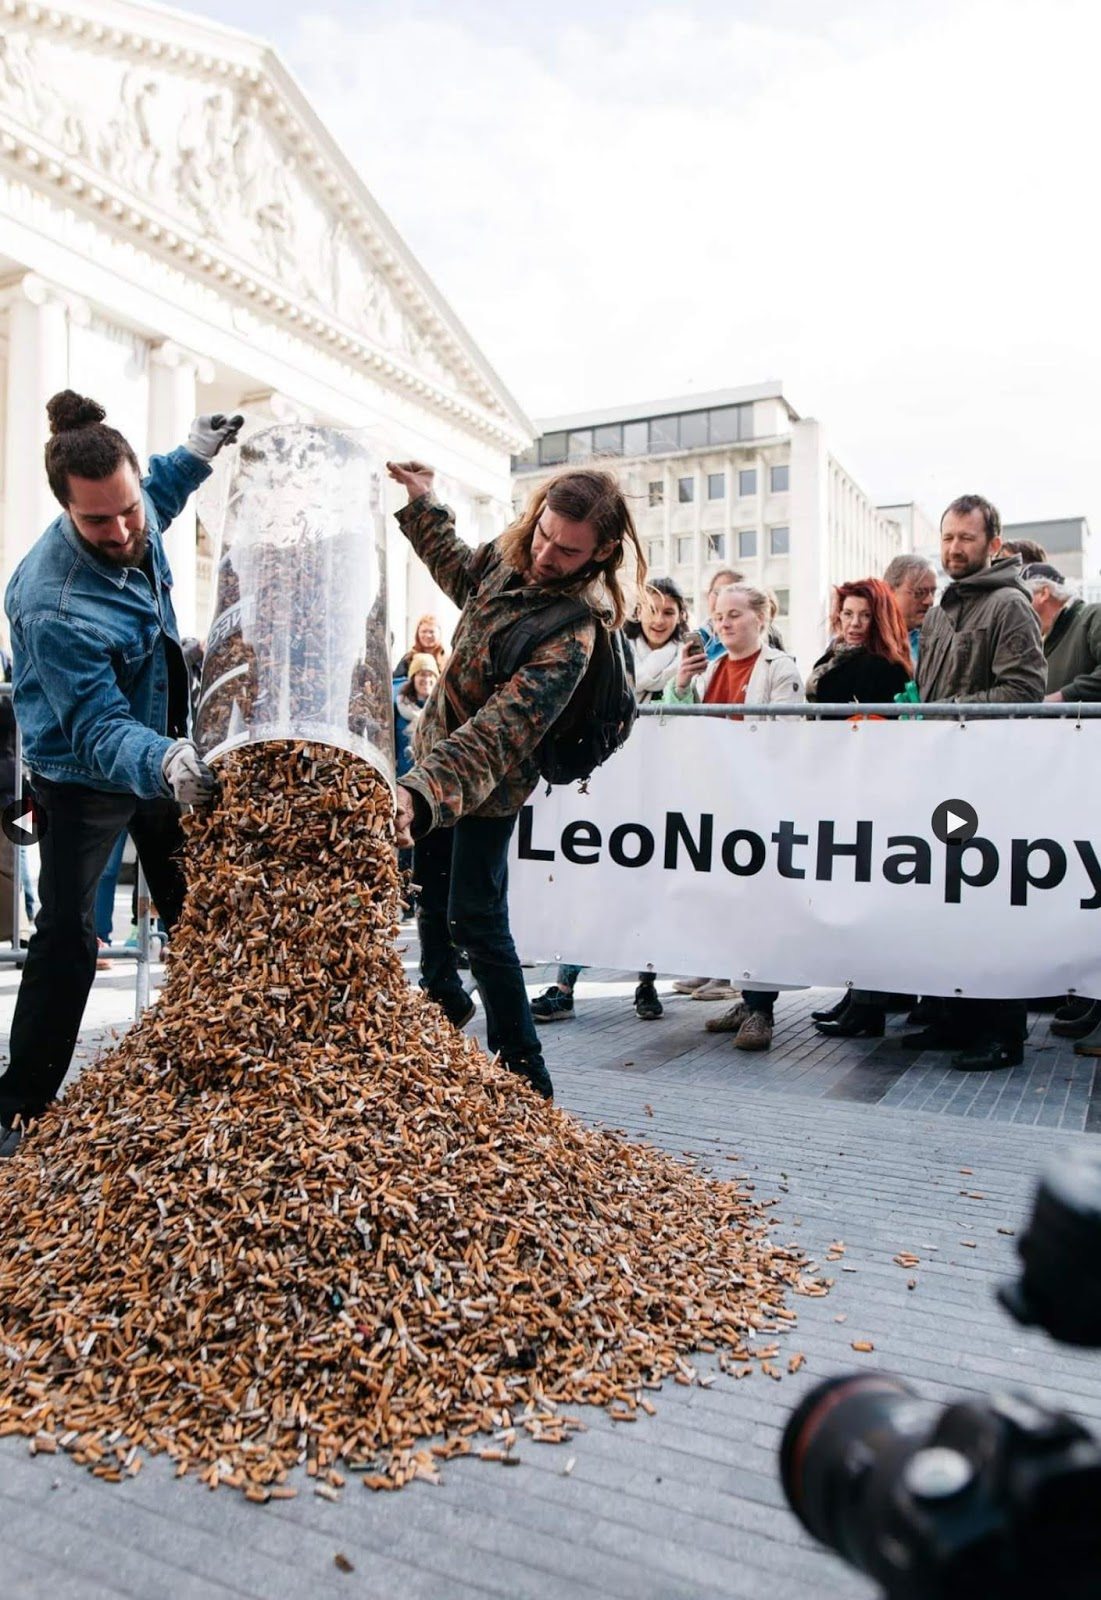 Volunteers In Brussels Collected About 300,000 Cigarette Butts In Only Three Hours